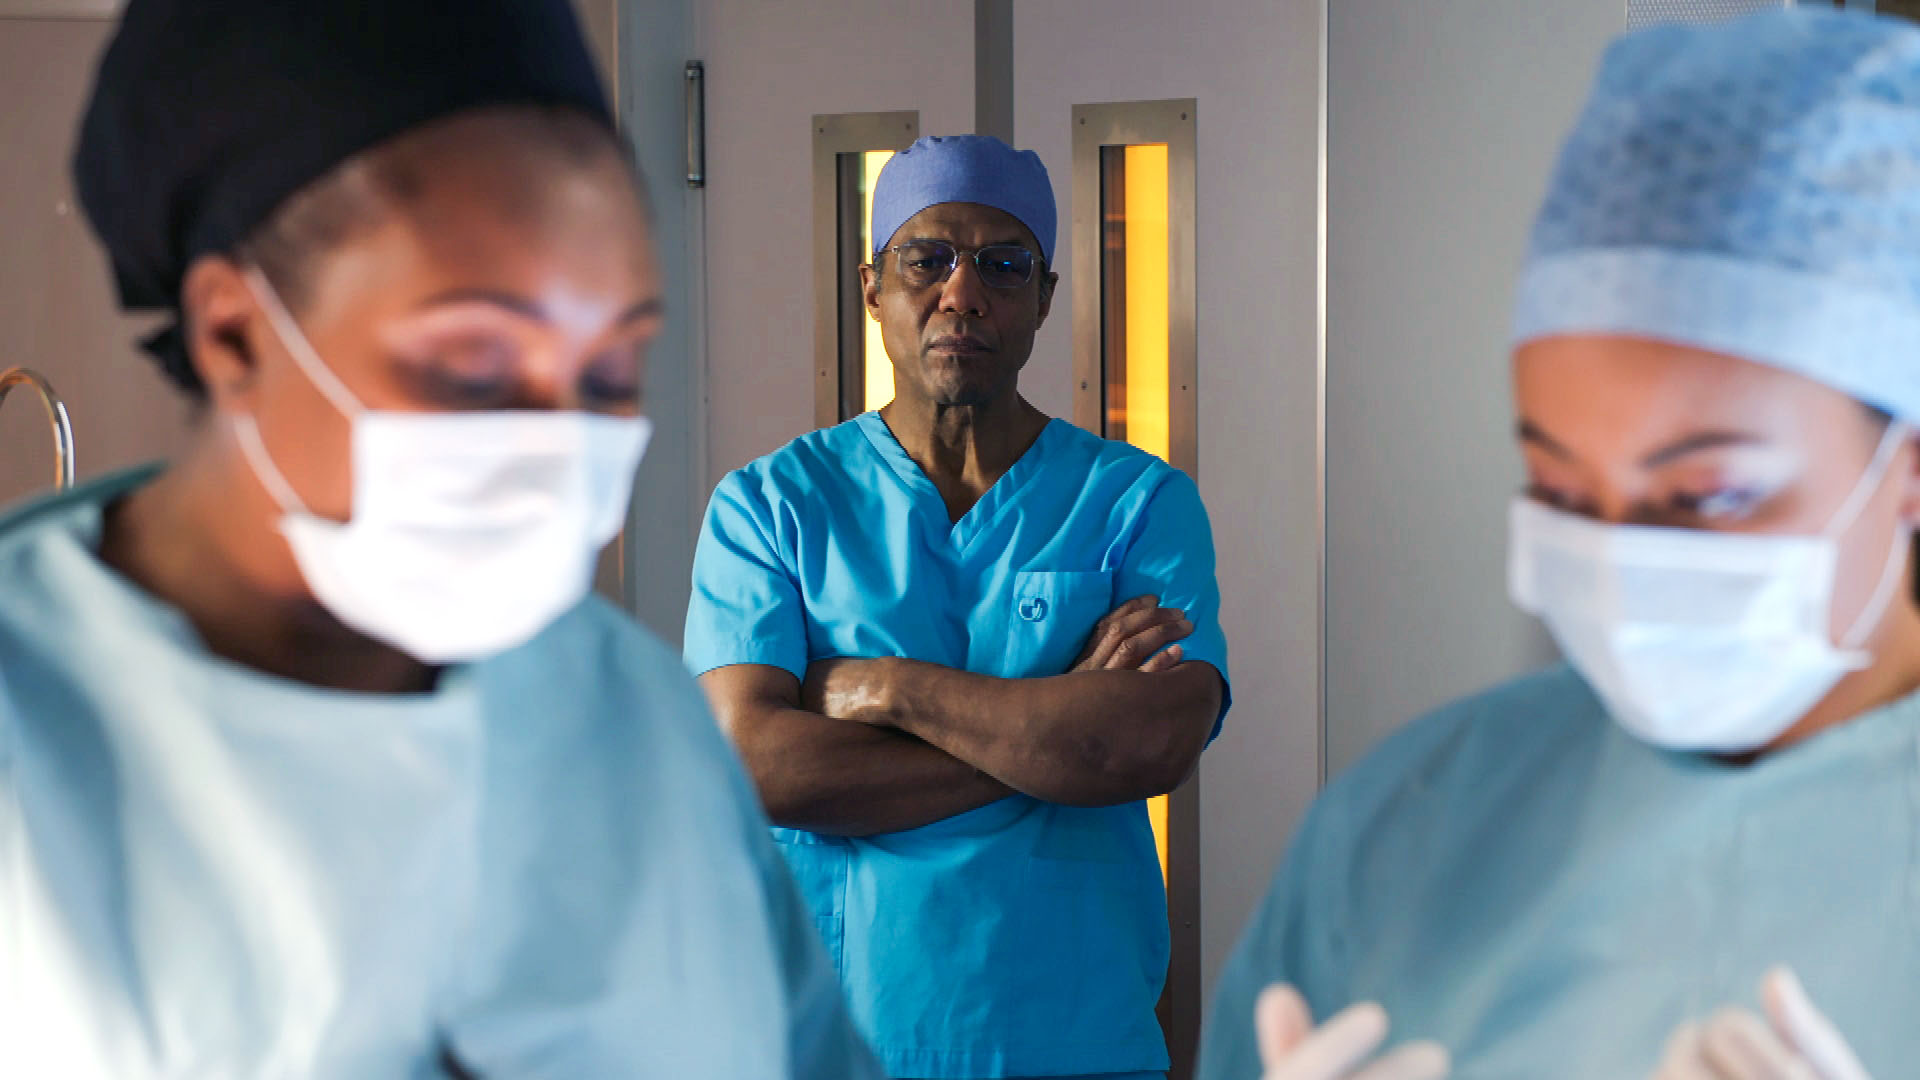 BBC medical drama 'Holby City' will donate masks and other protective equipment to the NHS. (BBC)